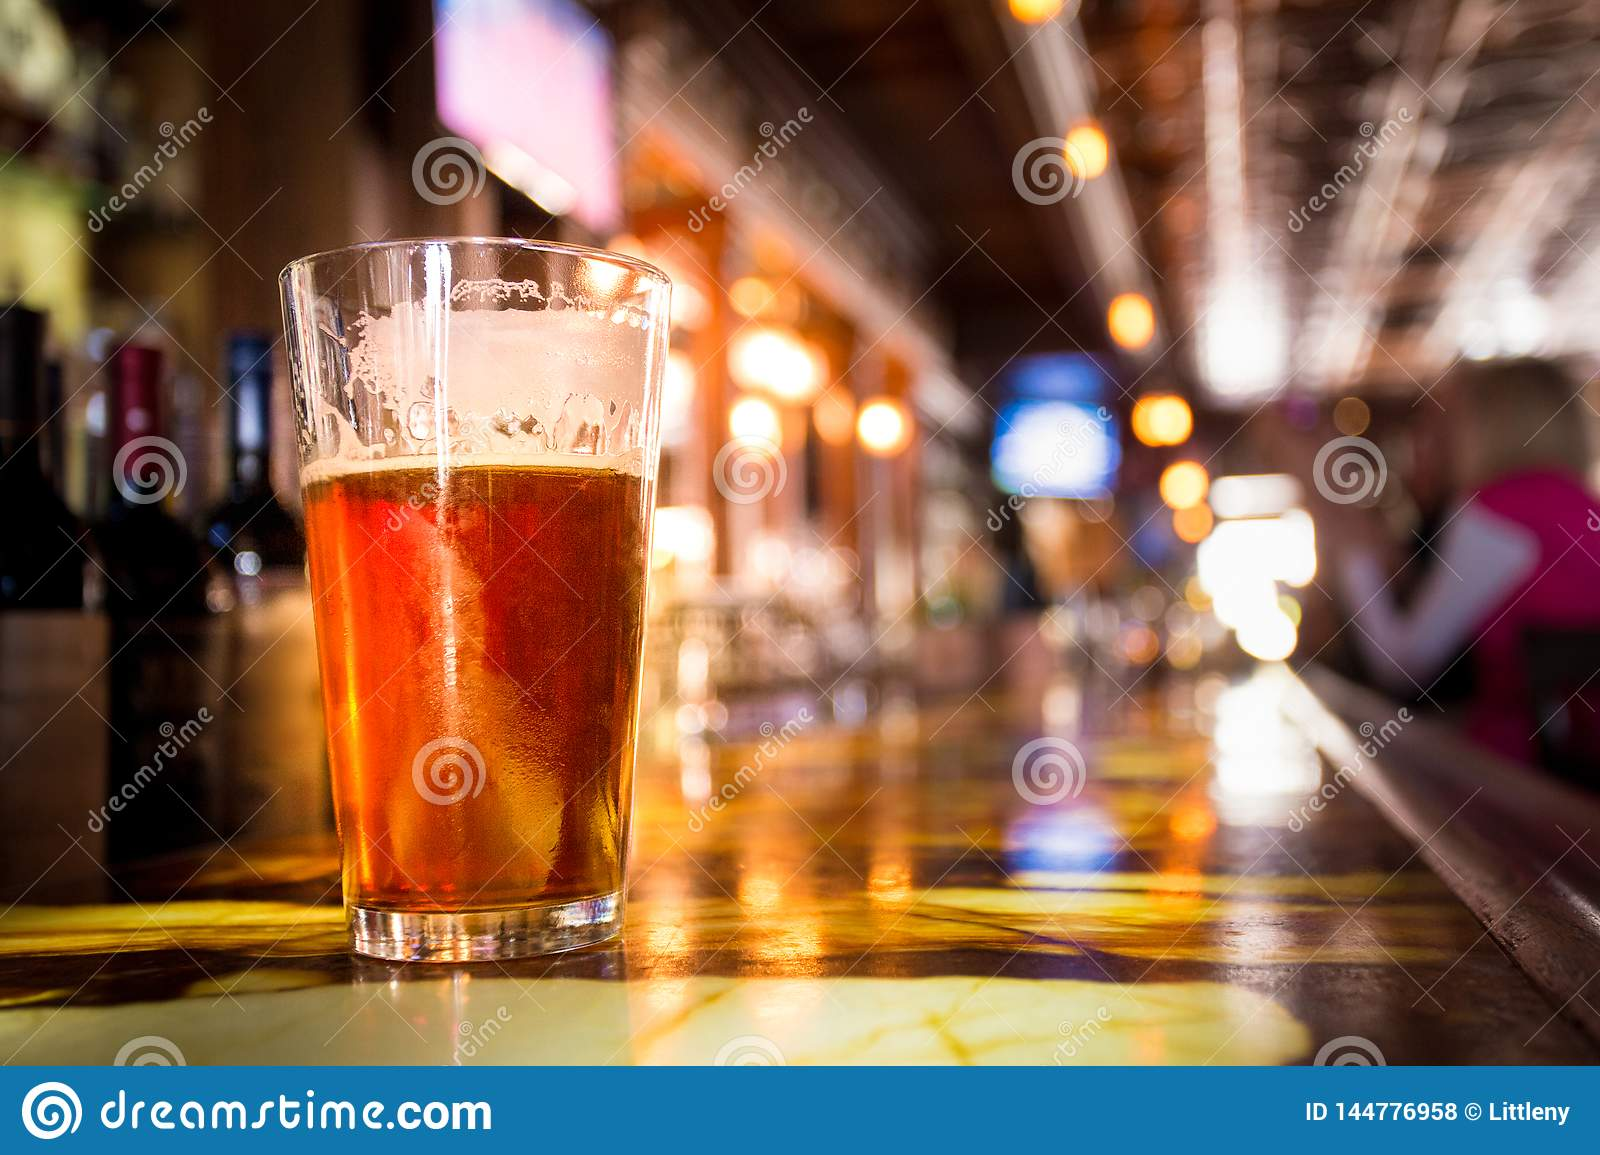 Glass Pint of amber beer with colorful blur of bar